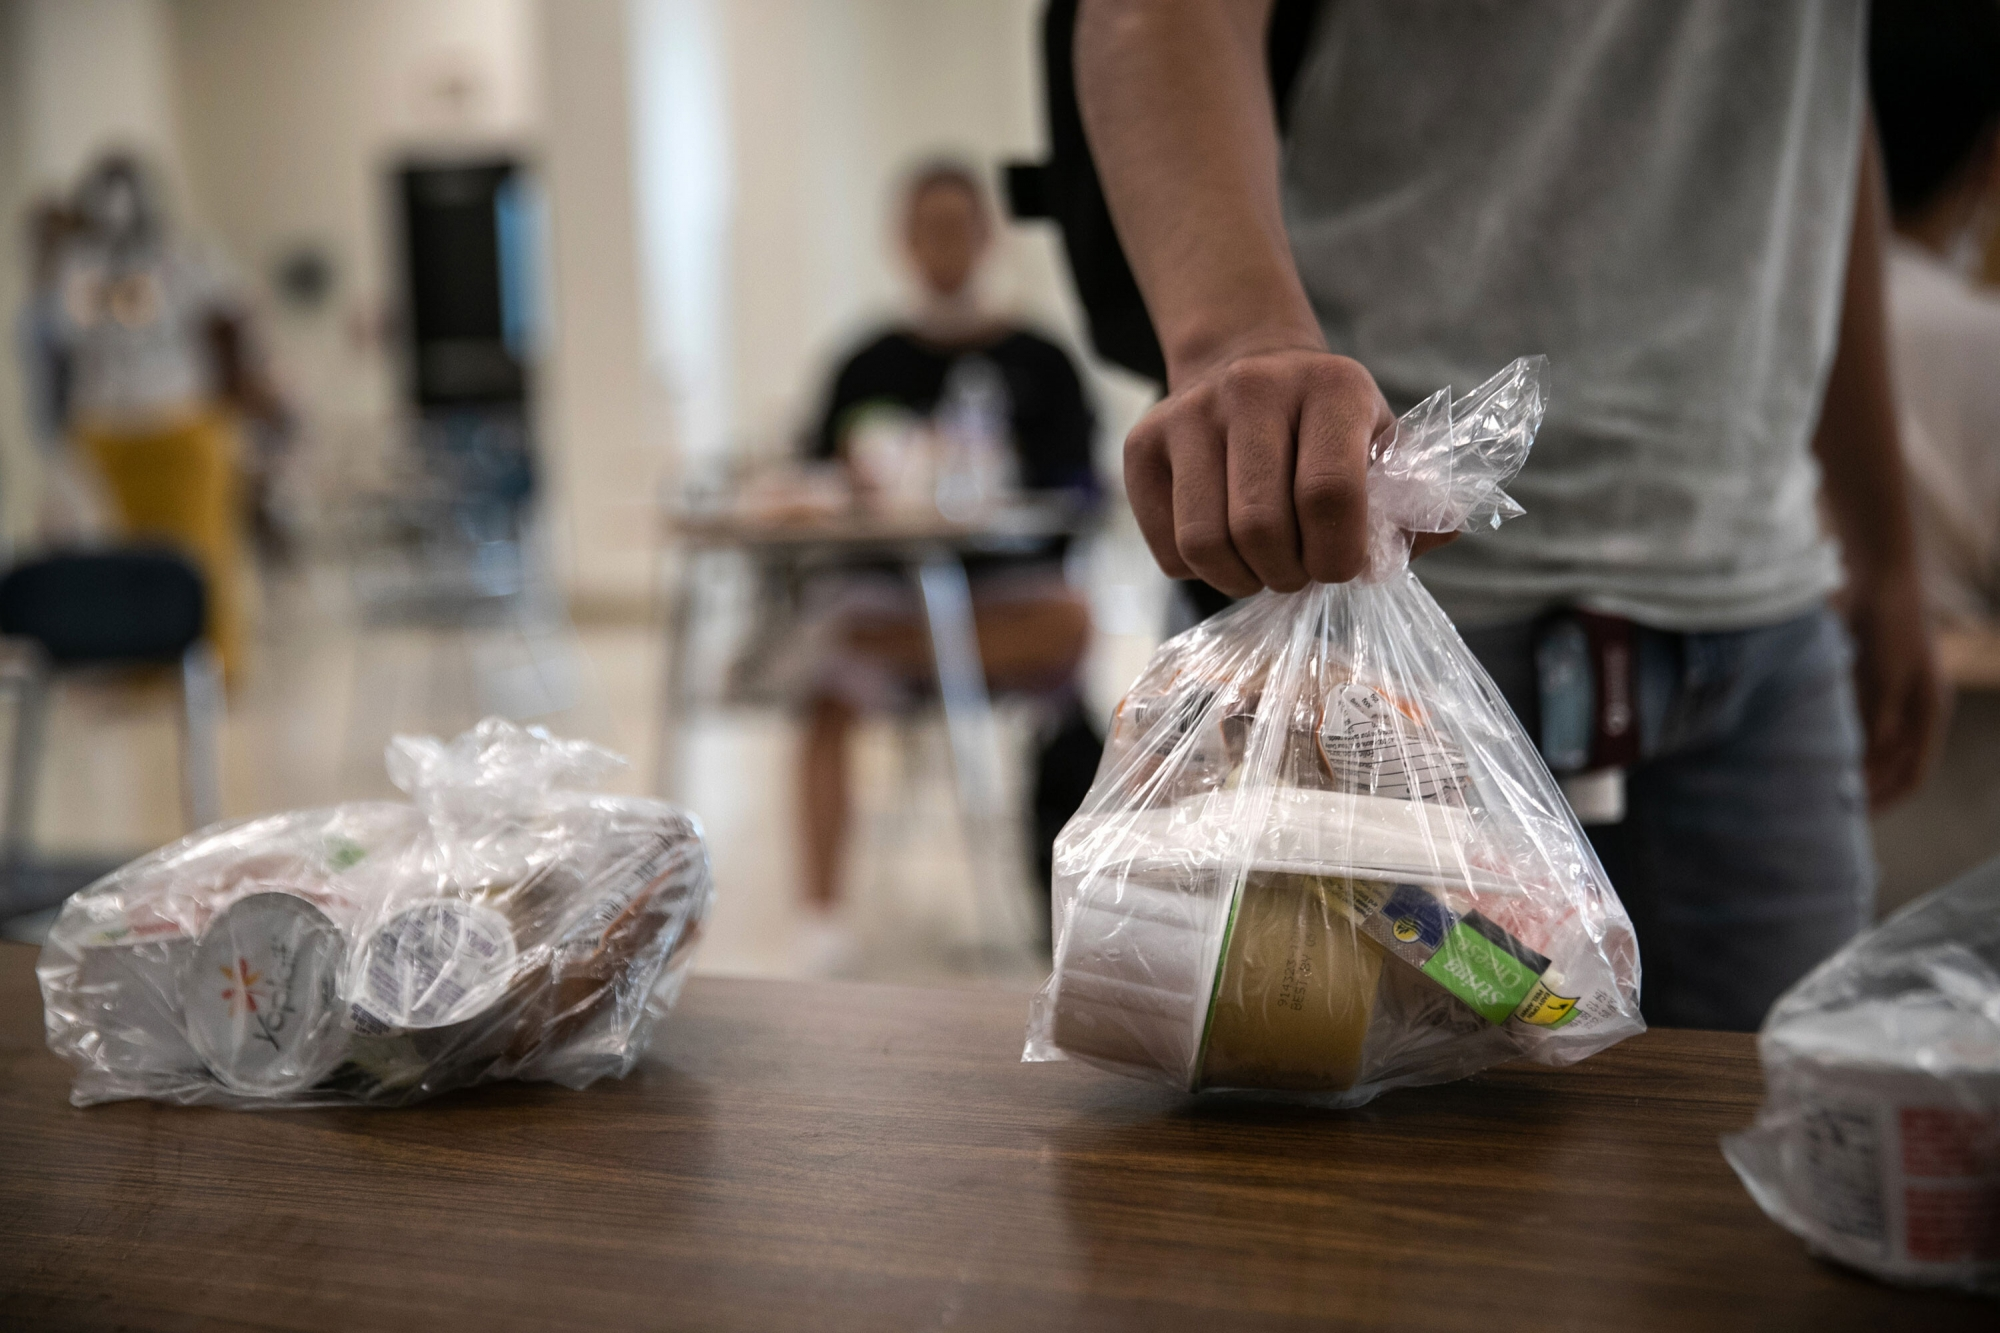 Montgomery County Schools food distribution staffer tests positive...